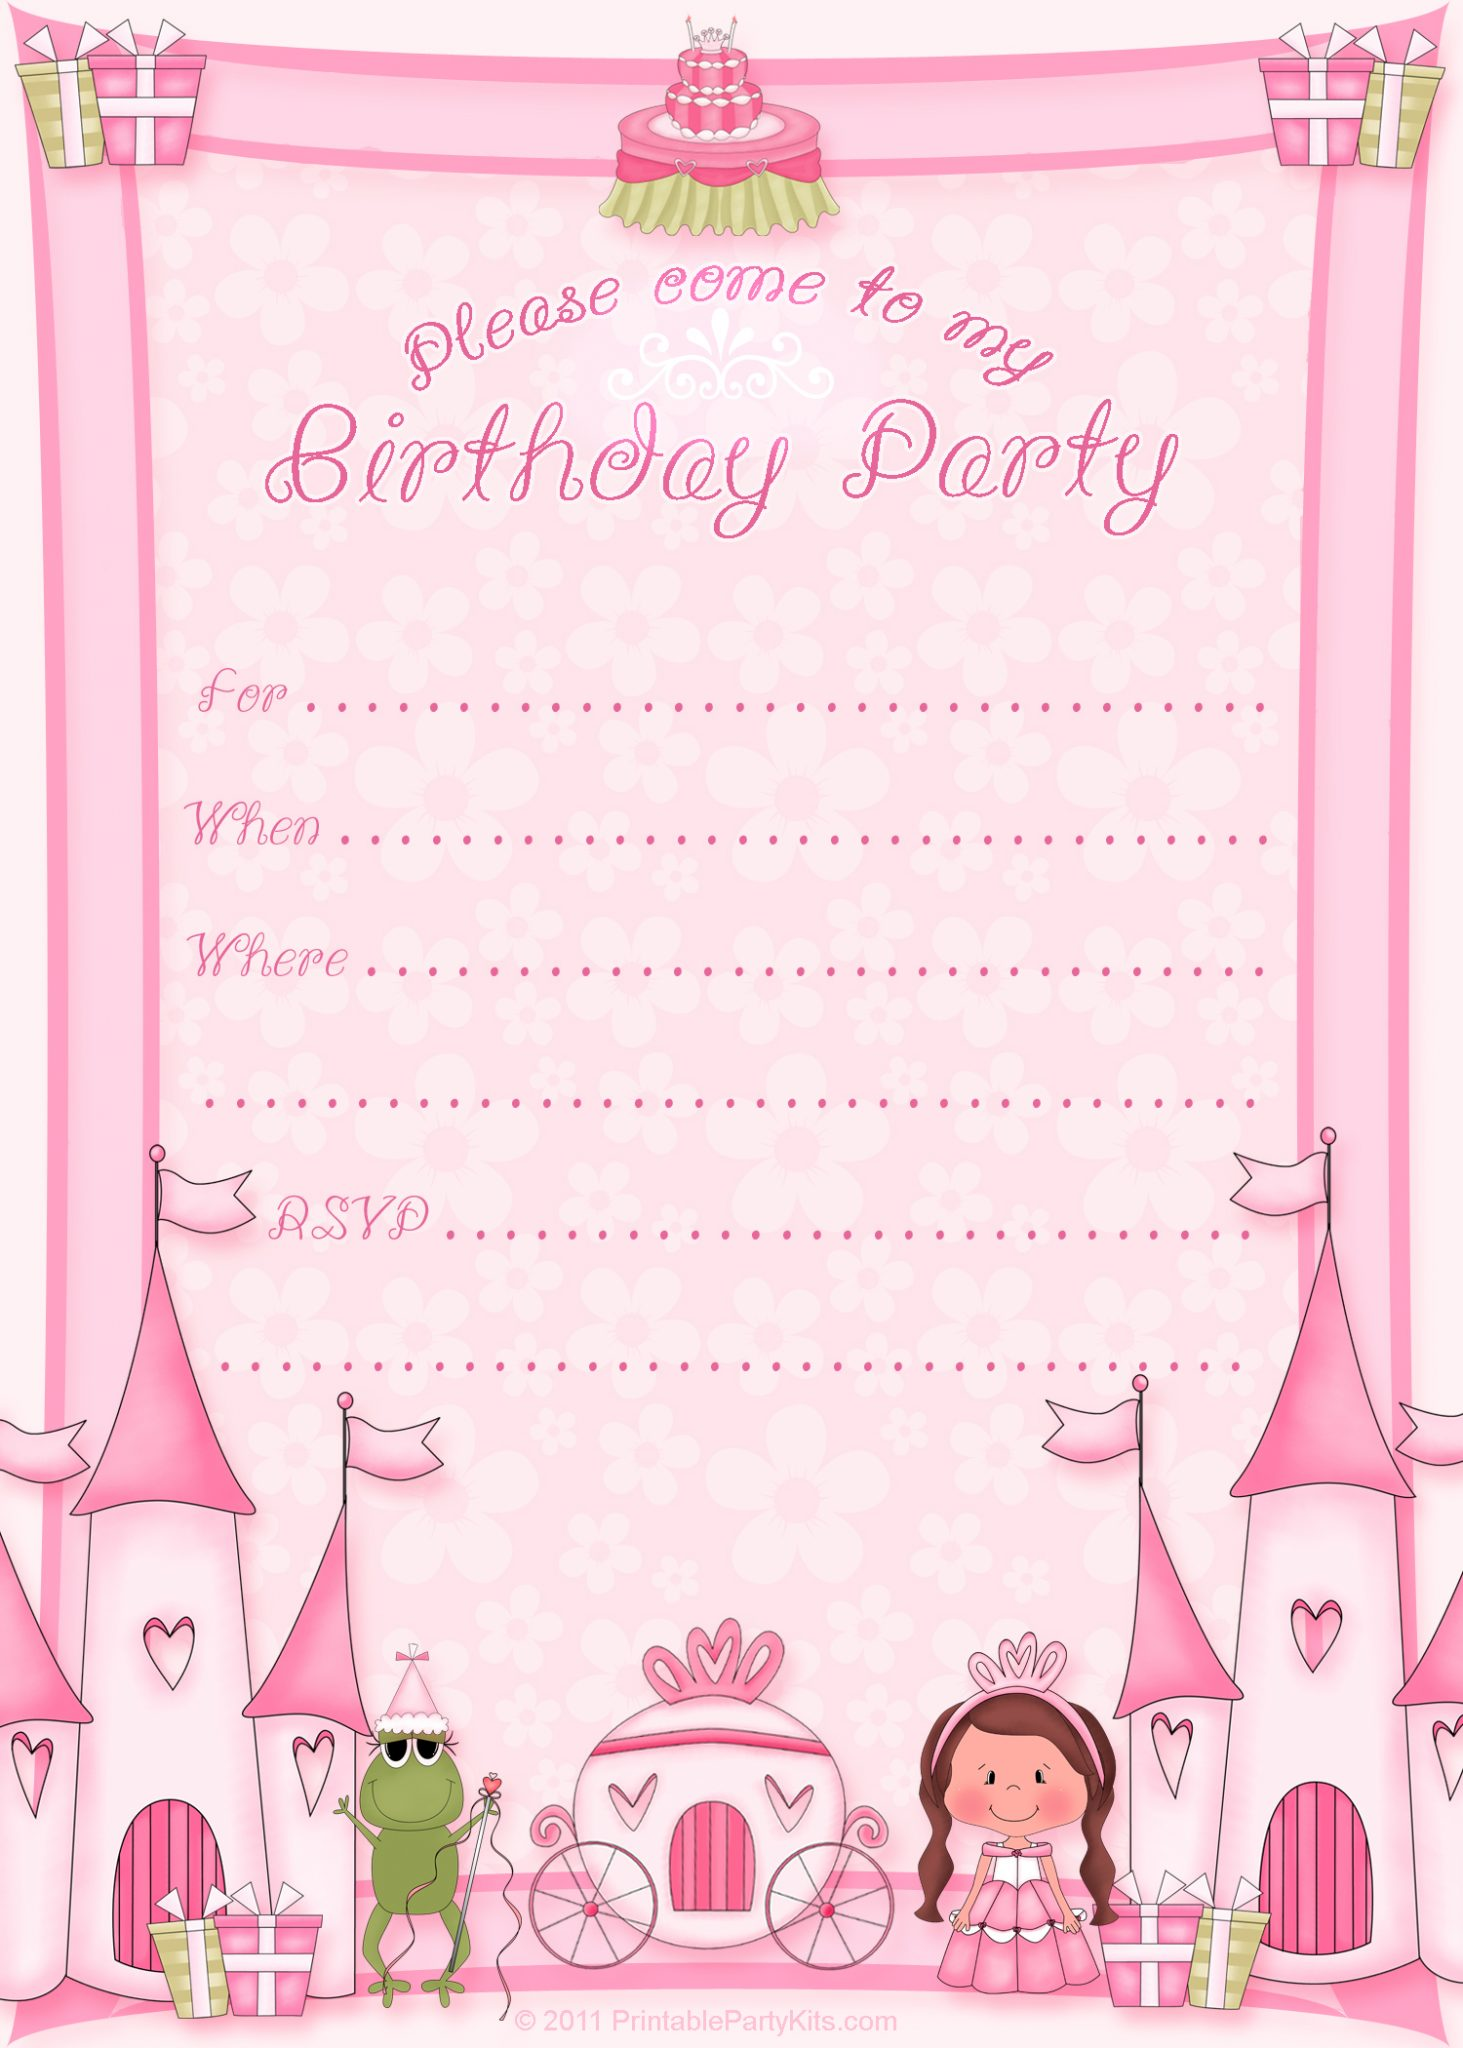 Princess Party Ideas on Pinterest | Princess Party, Princess Birthday Invitations and Disney ...